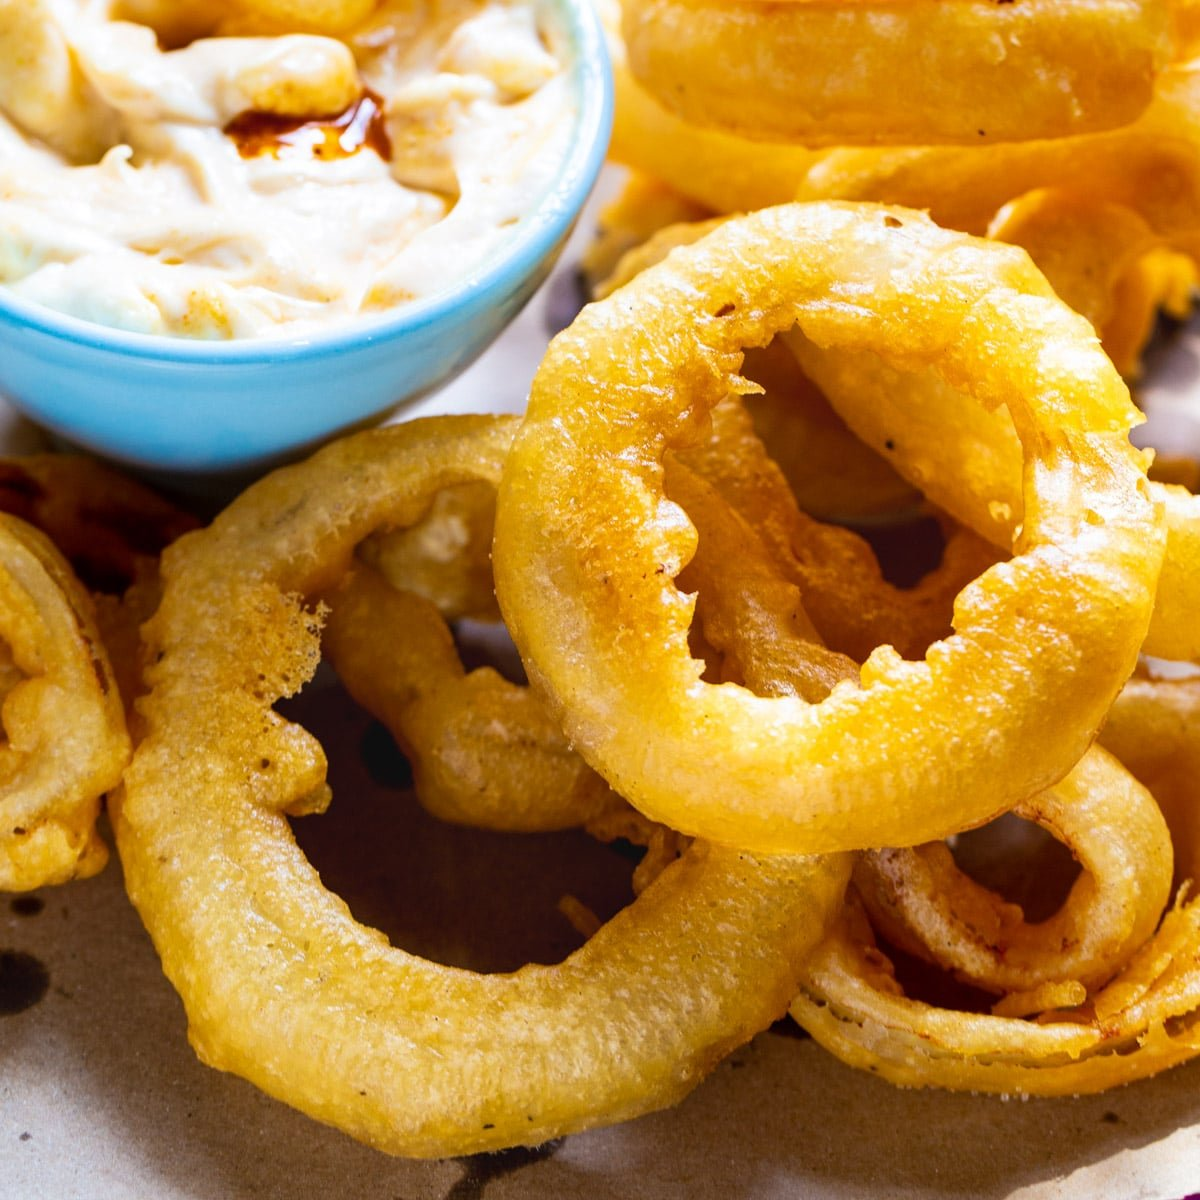 Beer Battered Onion Rings on a plate with dipping sauce.